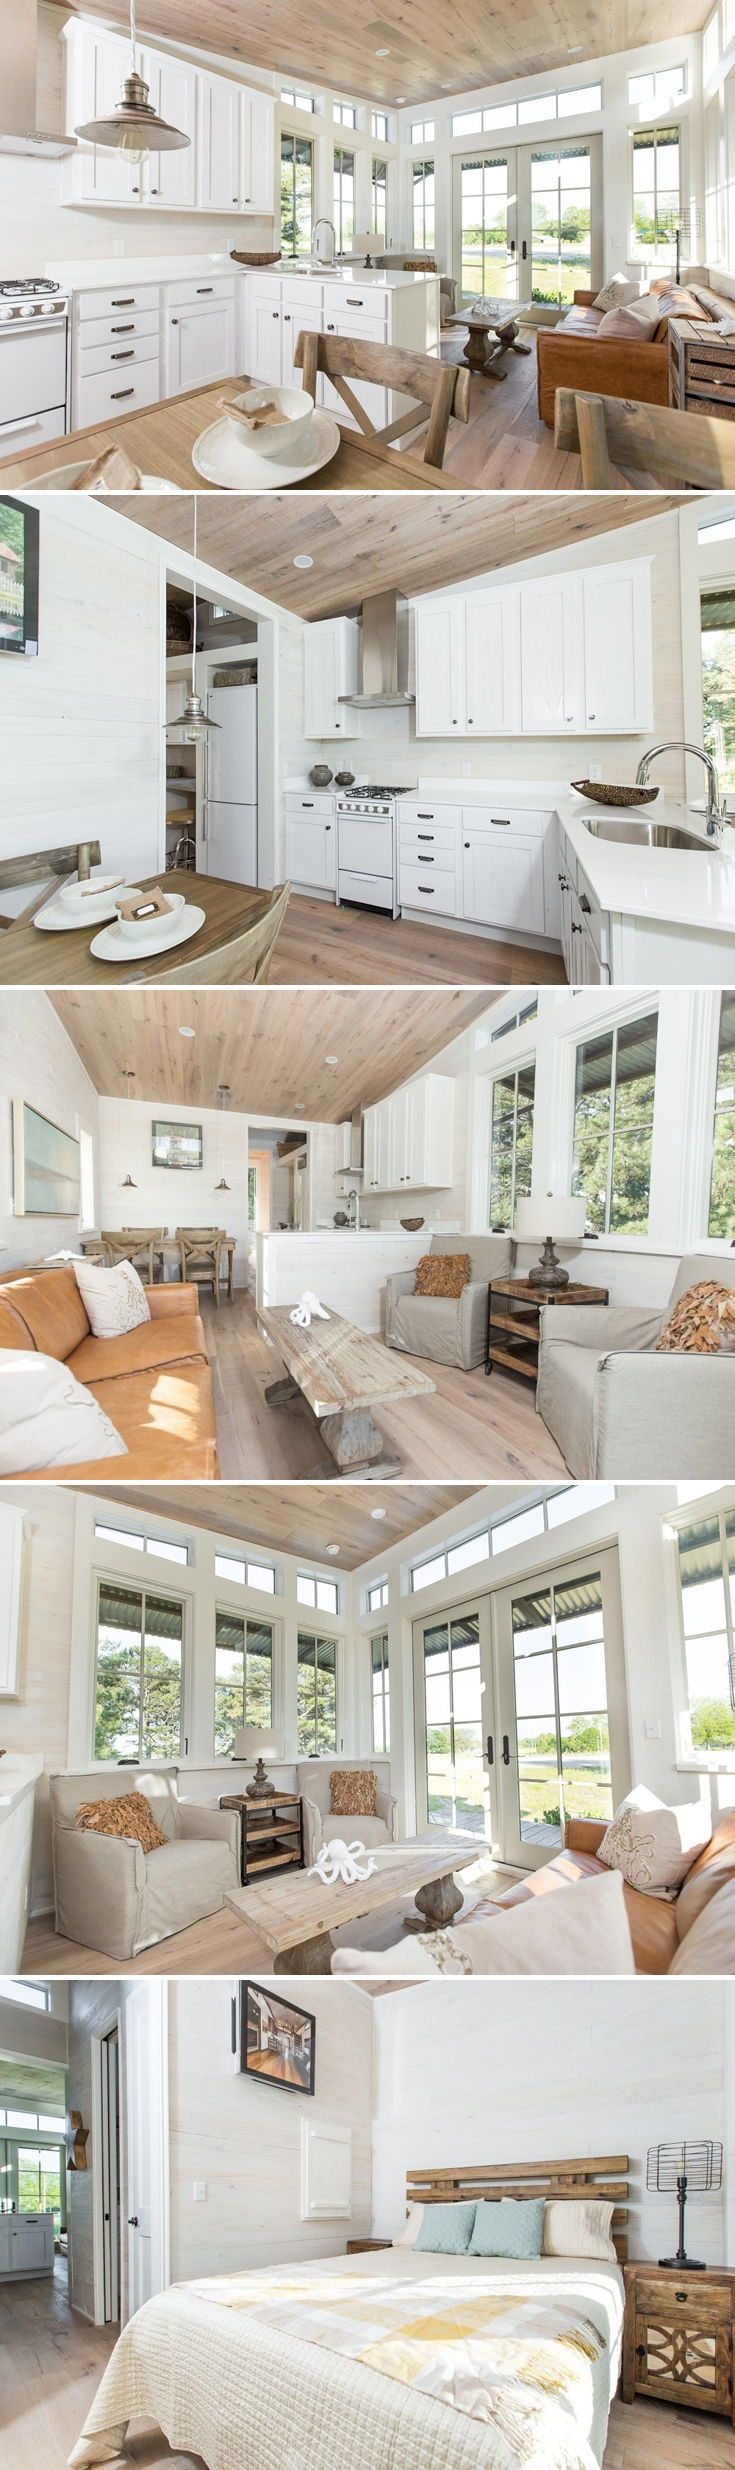 saltbox by clayton tiny homes - Deckideen Fr Modulare Huser